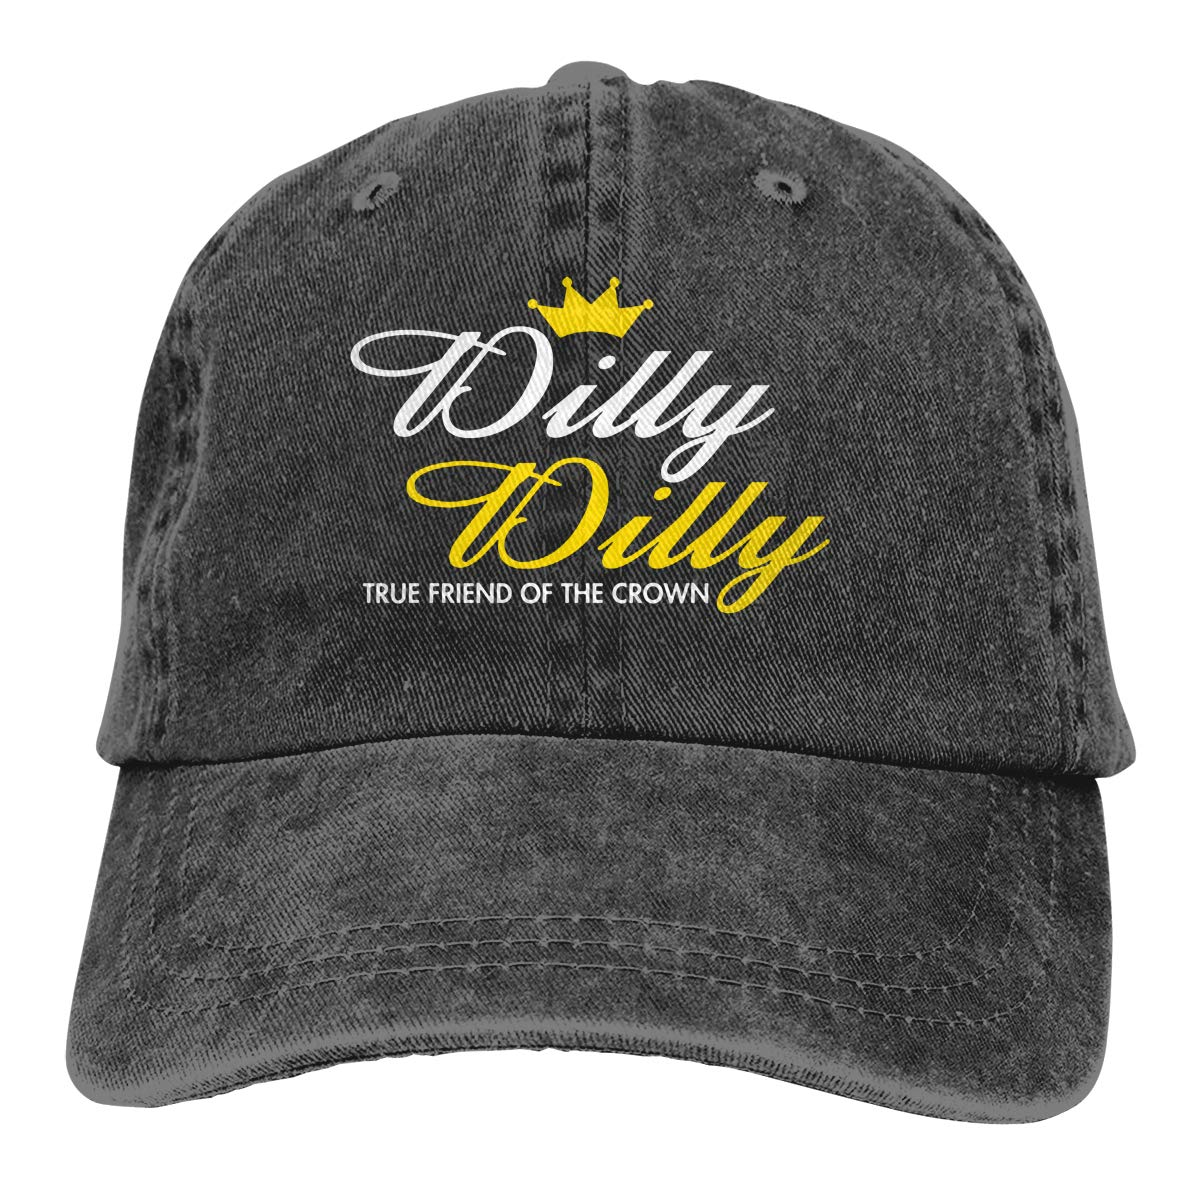 Swmo0wk2d Dilly Dilly - True Friend of The Crown Unisex Snapback Adult Cowboy Hat Adjustable Hats